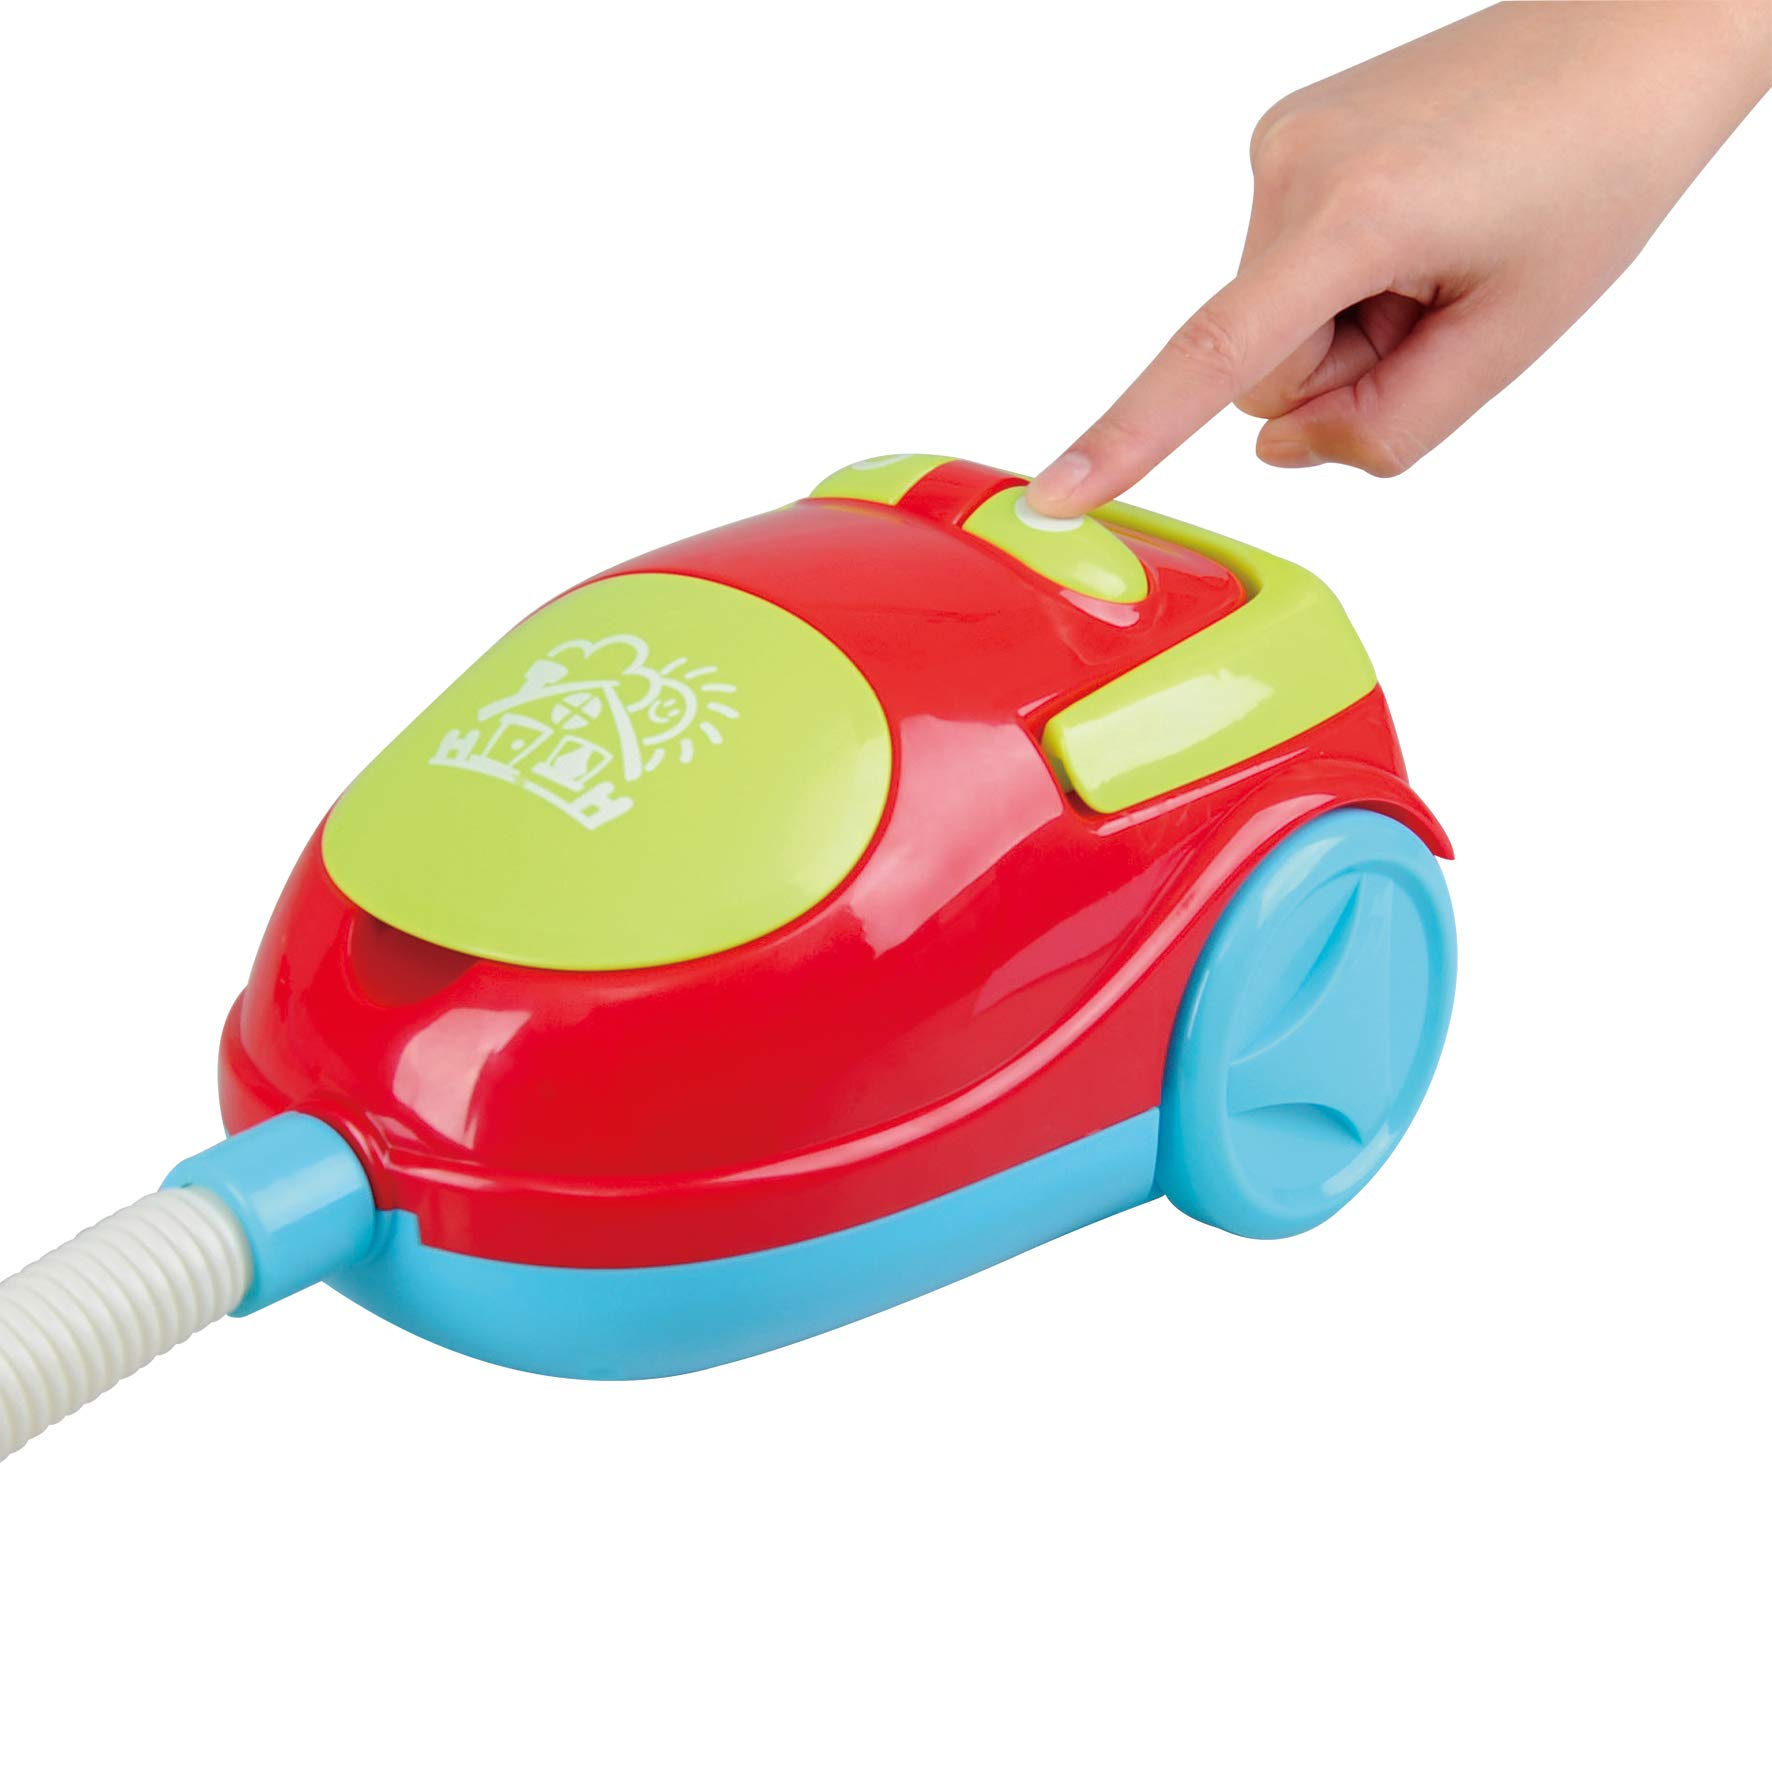 PlayGo My Cleaning Trolley with Vacuum Cleaner Toy 7 Pc Home Products for Kids Pretend Play Set for Kids Age 3 Years & Up by PlayGo (Image #4)